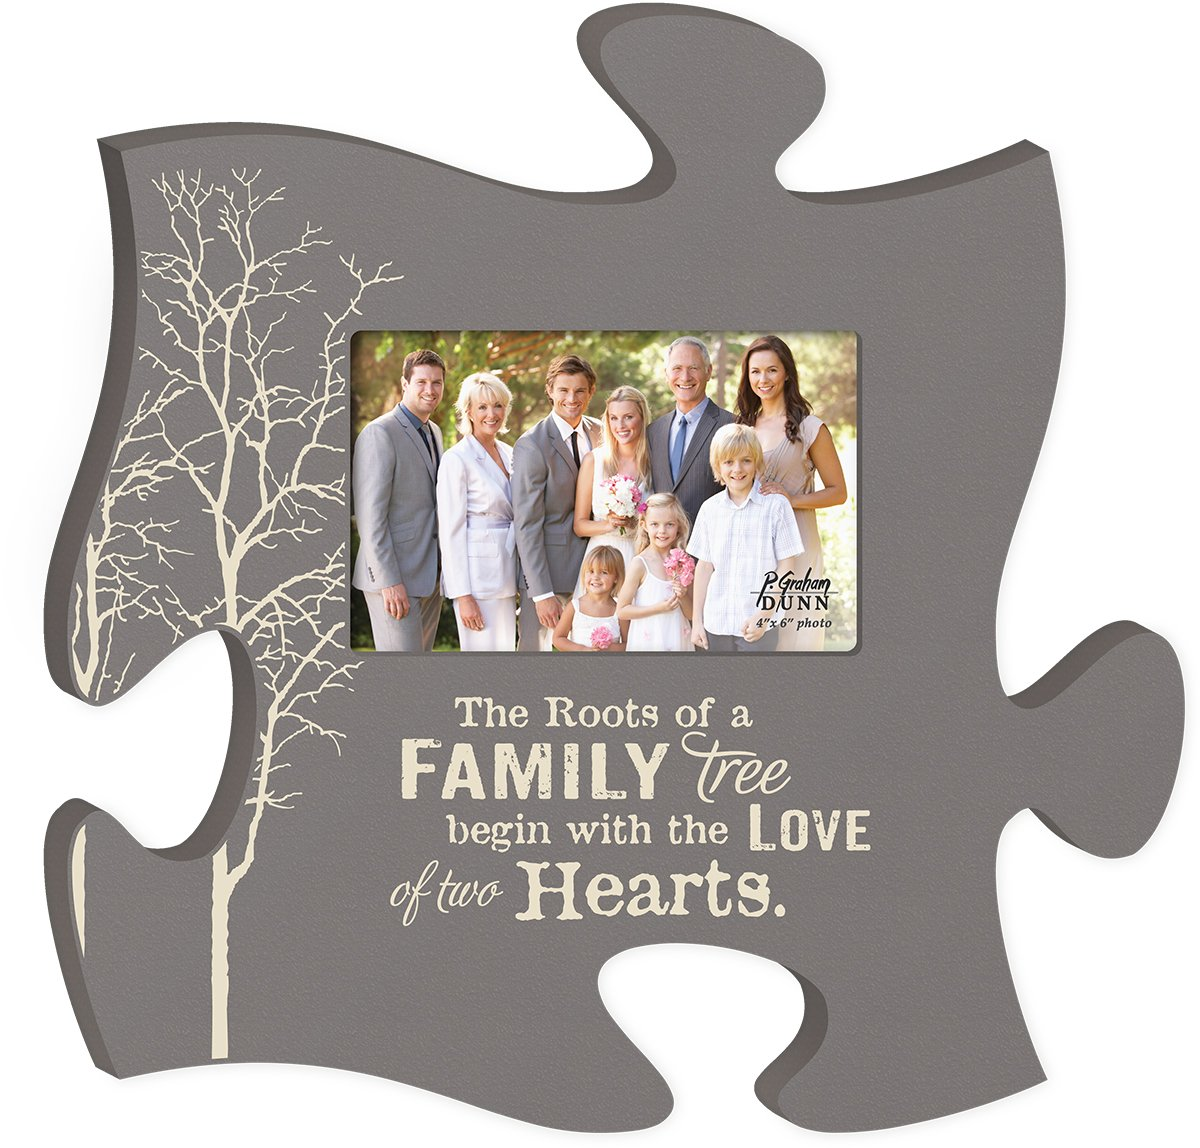 Graham Dunn The Roots of a Family Tree Grey 4x6 Photo Frame Inspirational Puzzle Piece Wall Art Plaque P